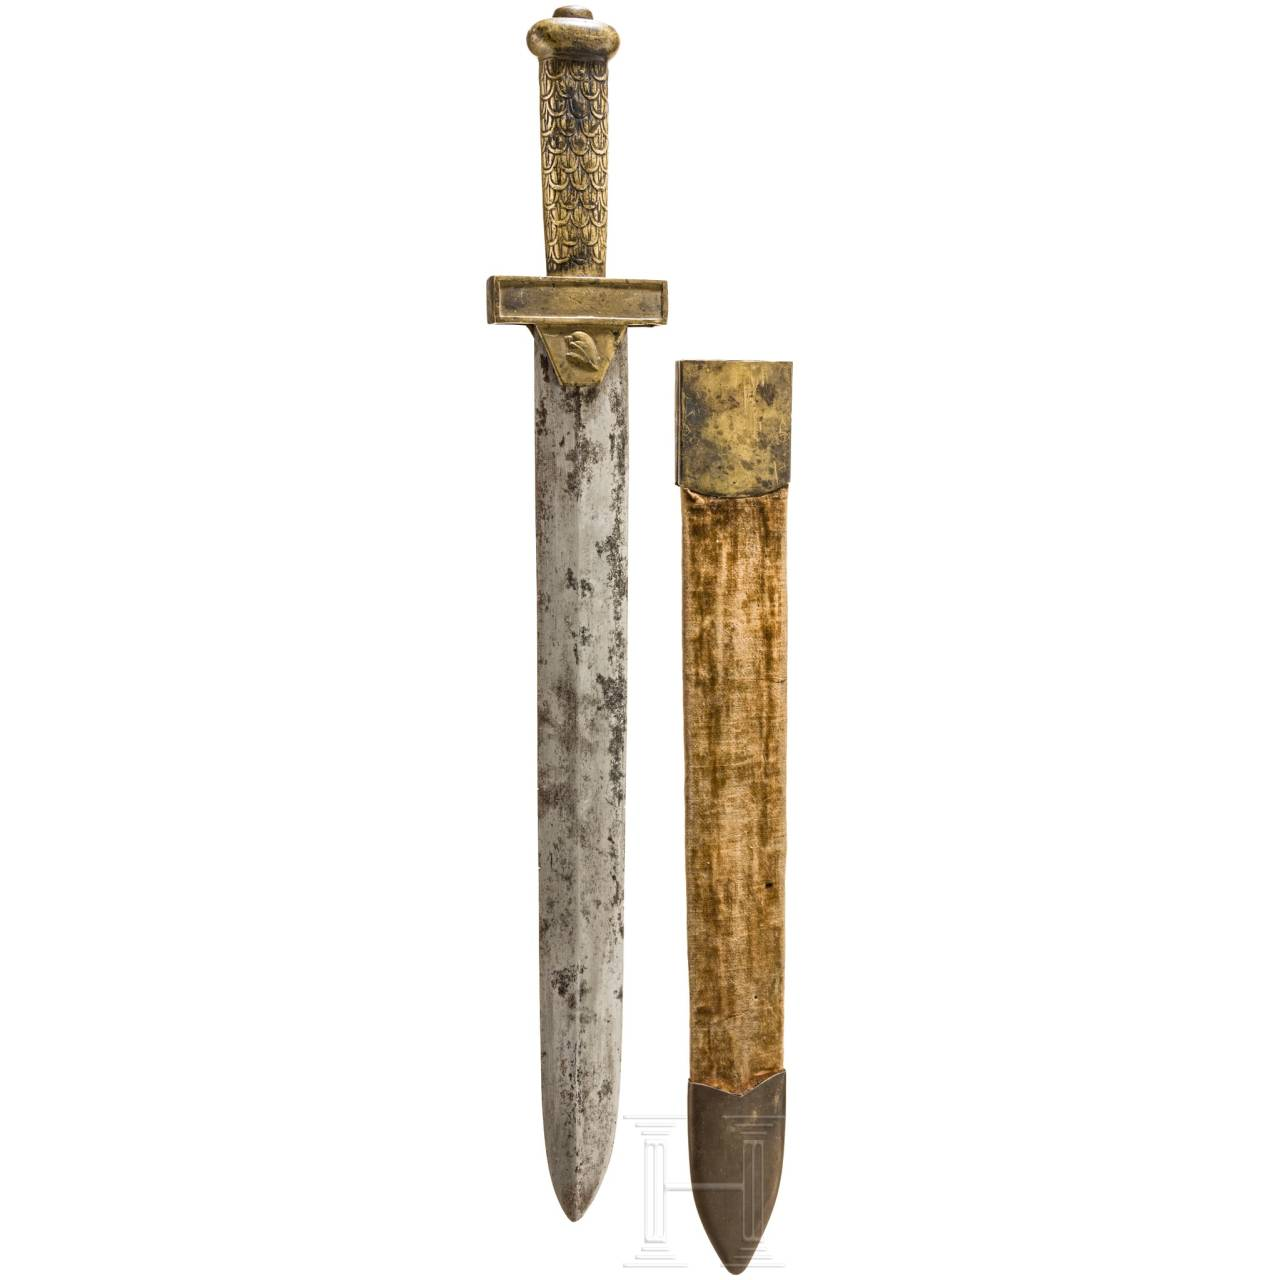 A short sword of the revolution period, late 18th century